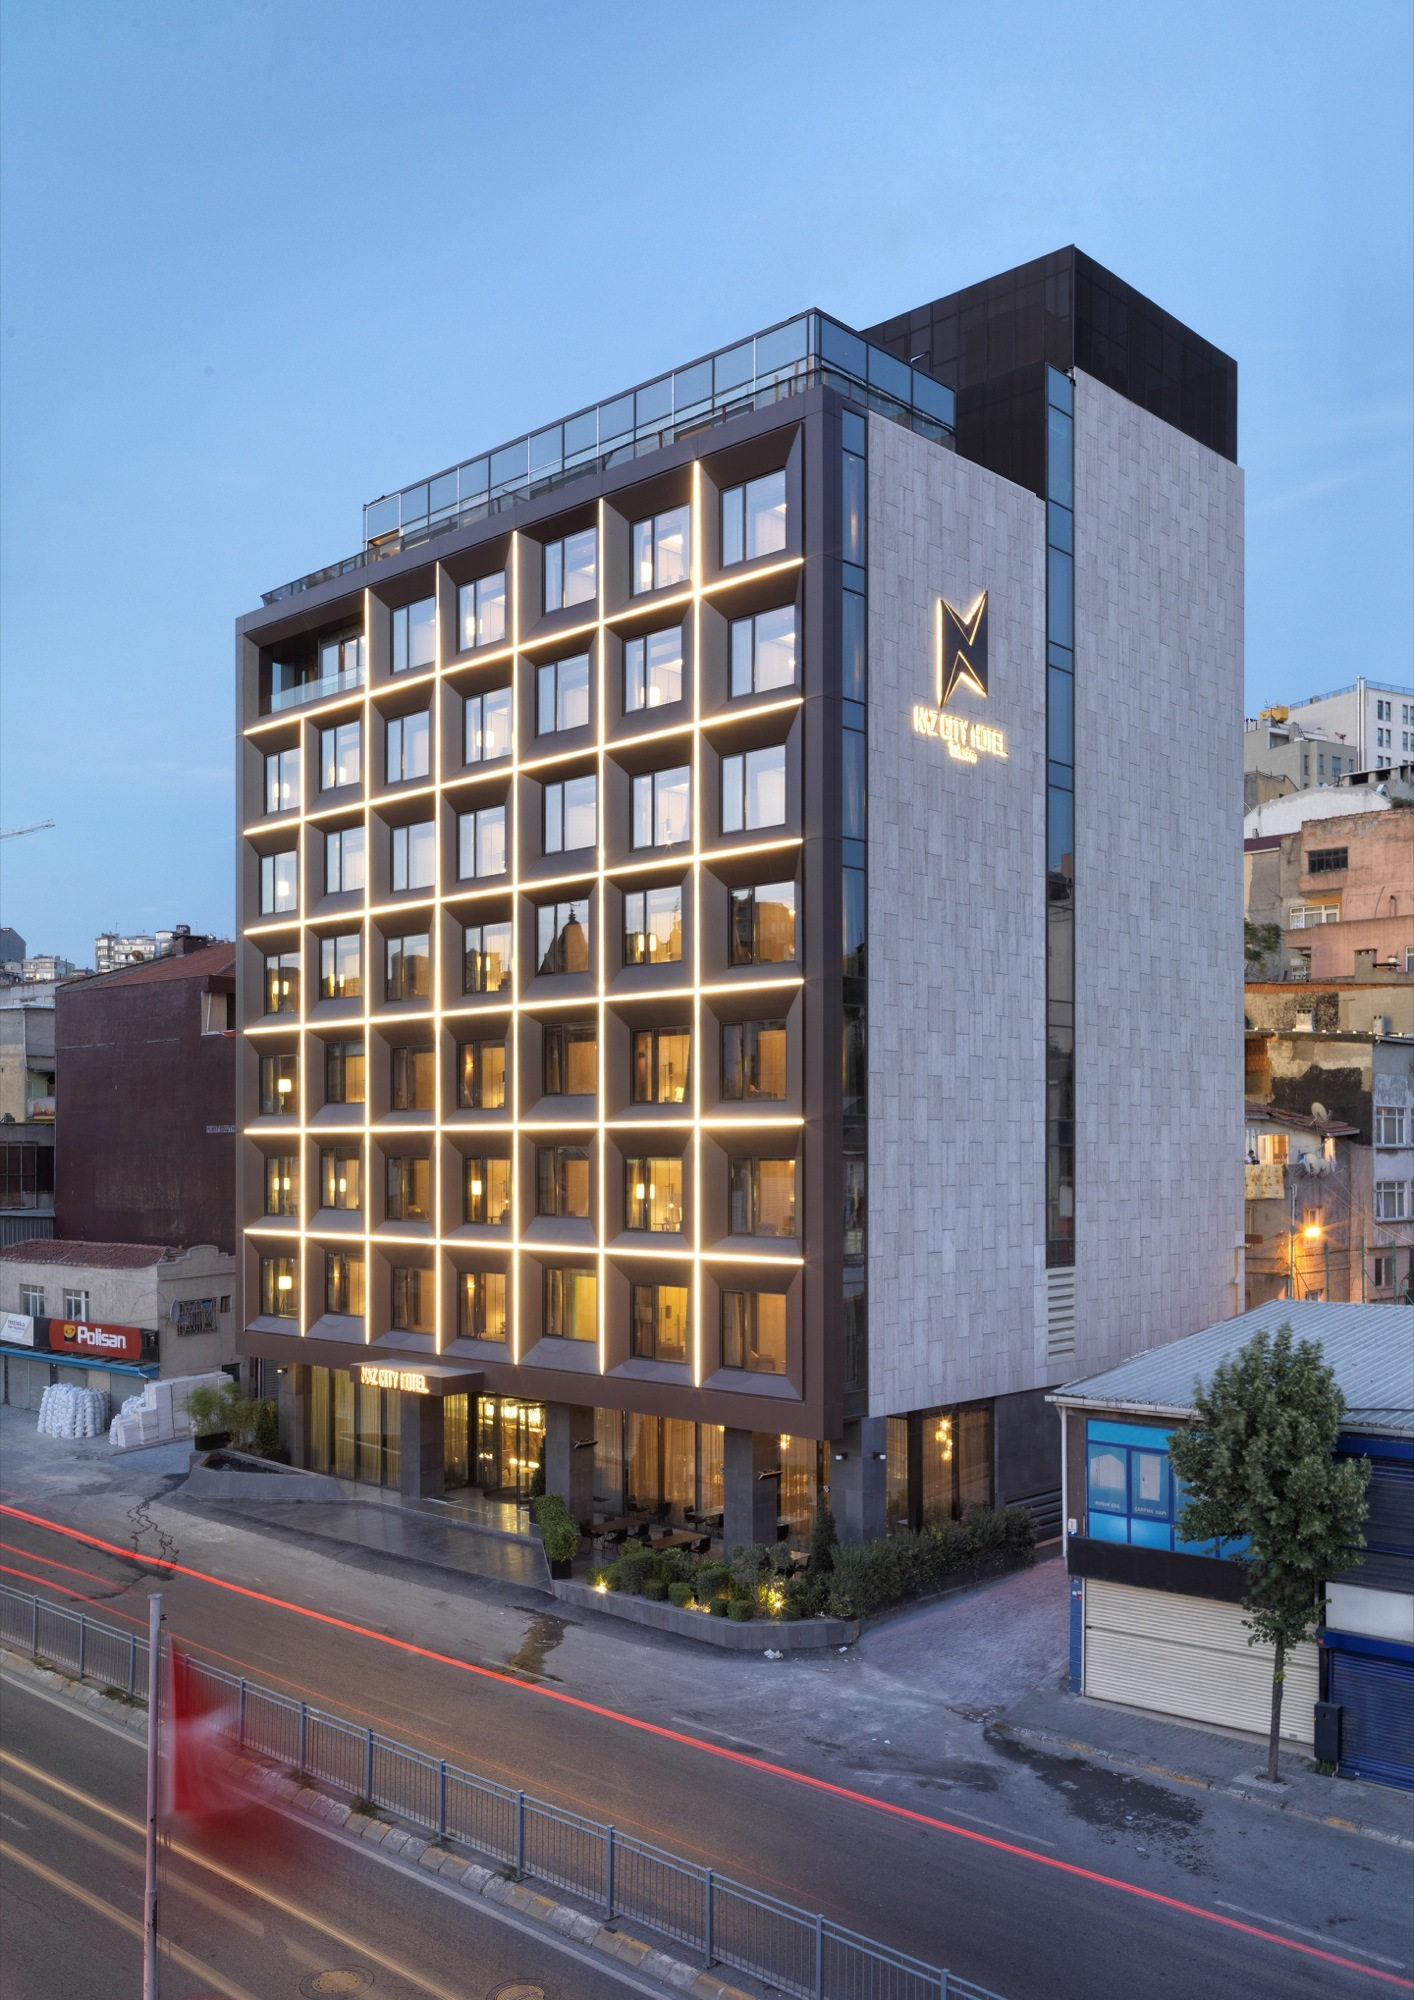 Naz city hotel taksim metex design group archdaily for Design hotel definizione